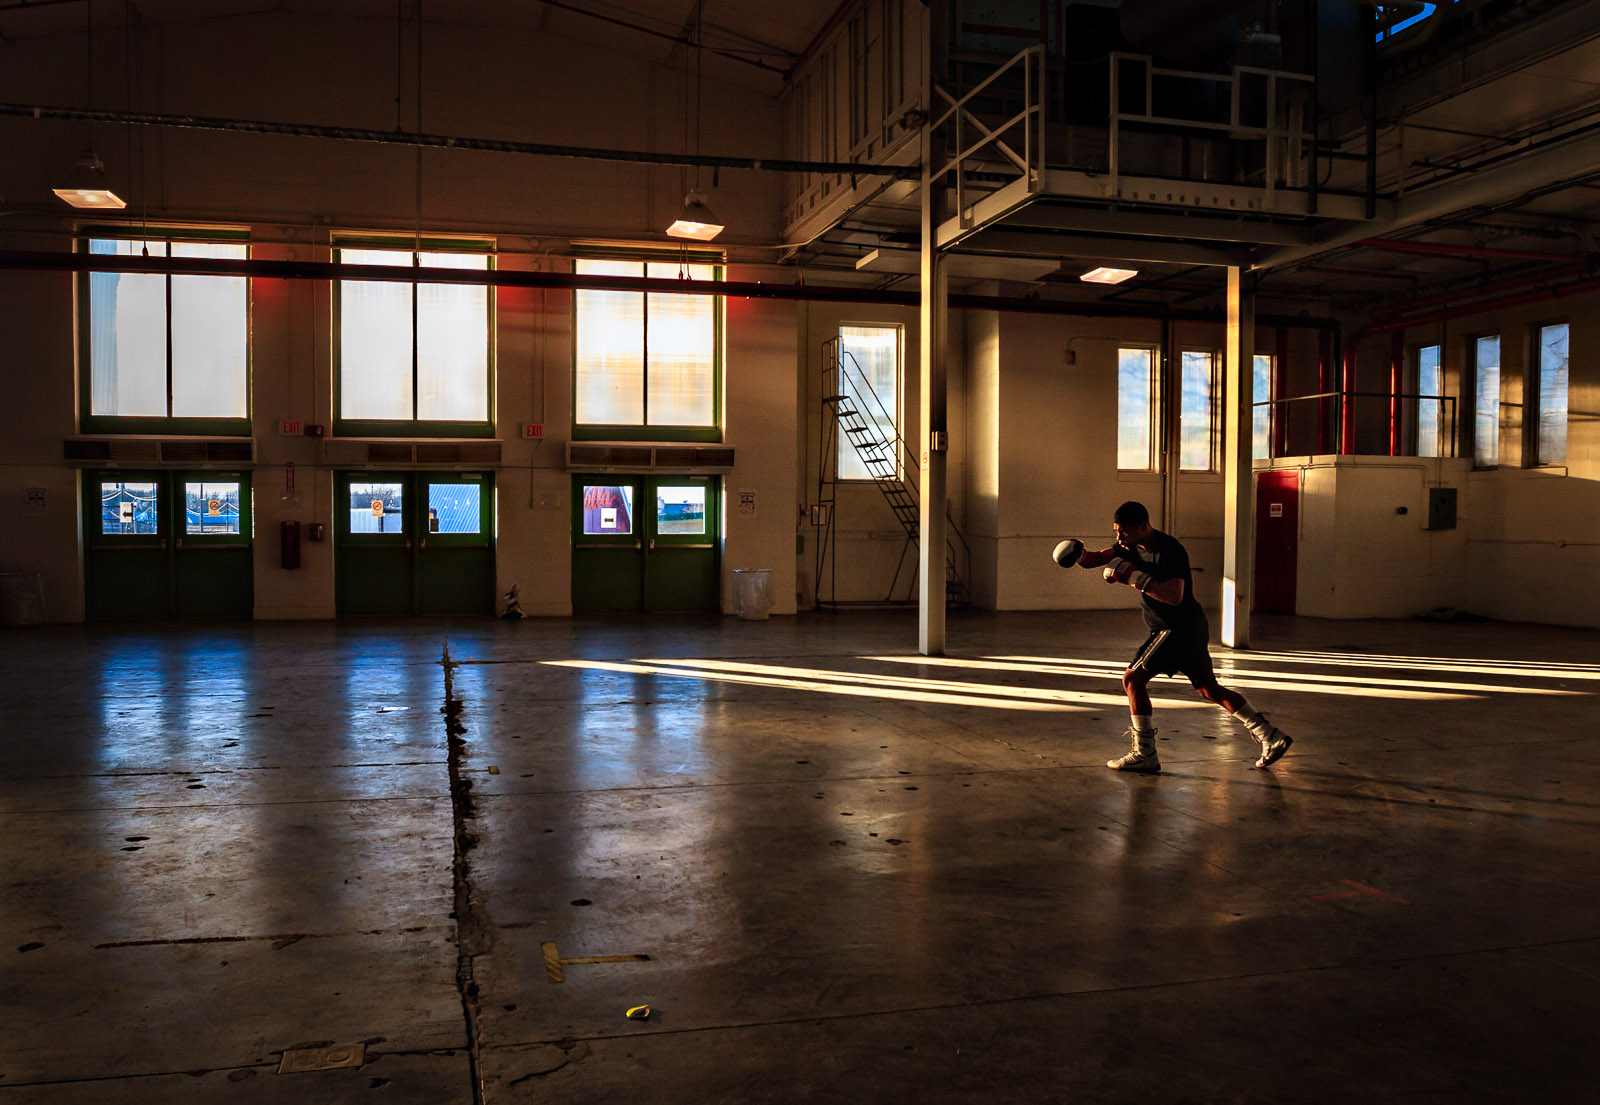 A boxer competing in the New York Amateur Golden Gloves tournament warms up away from the main ring inside a building on the New York State fairgrounds.Photograph by Jesse Neider